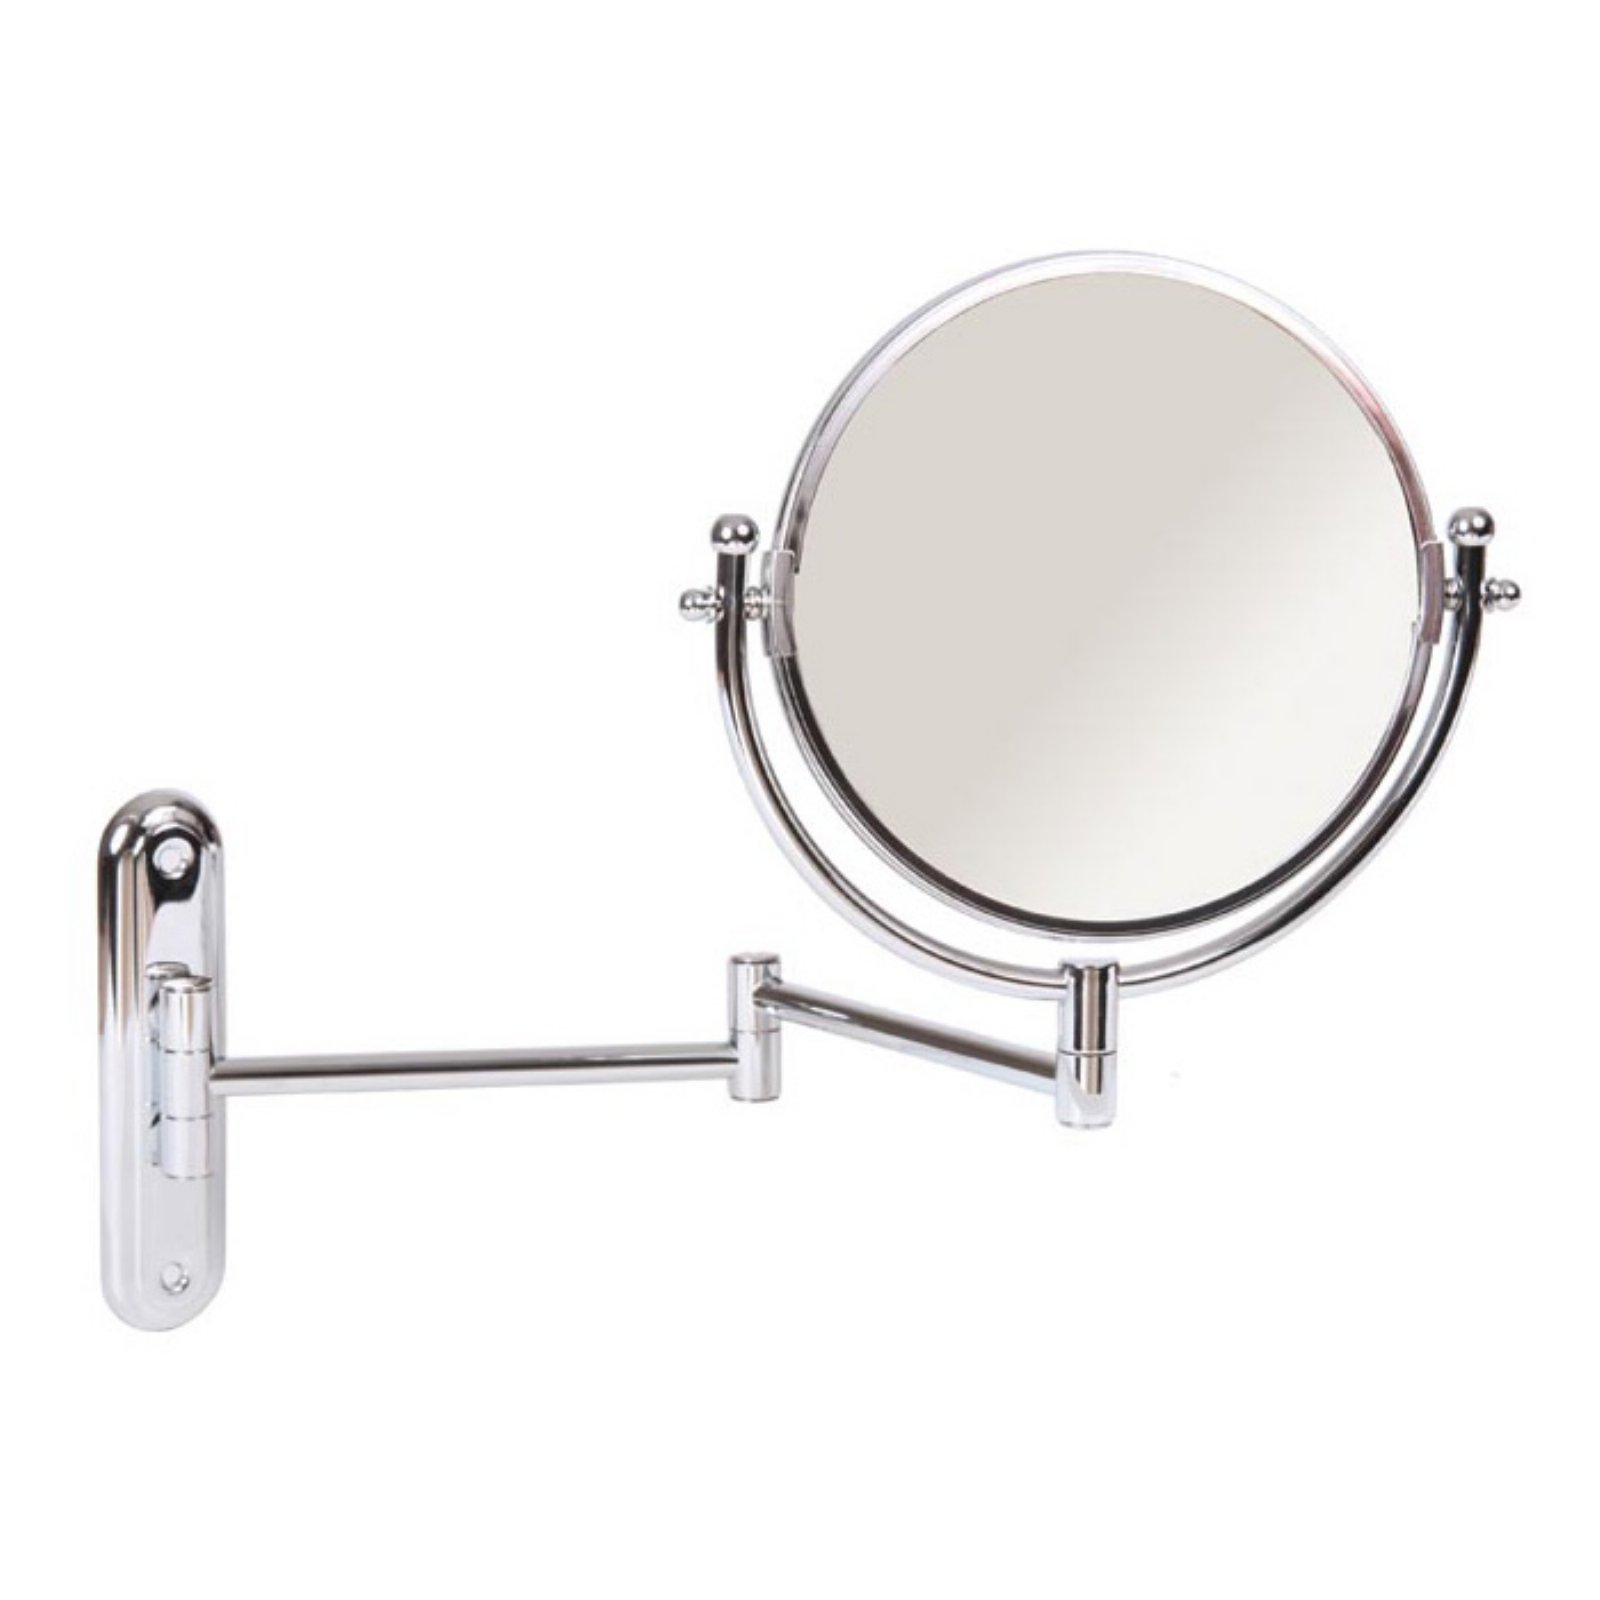 Taymor Wall Mount Swing Arm Rotating Mirror by Taymor Industries USA Inc